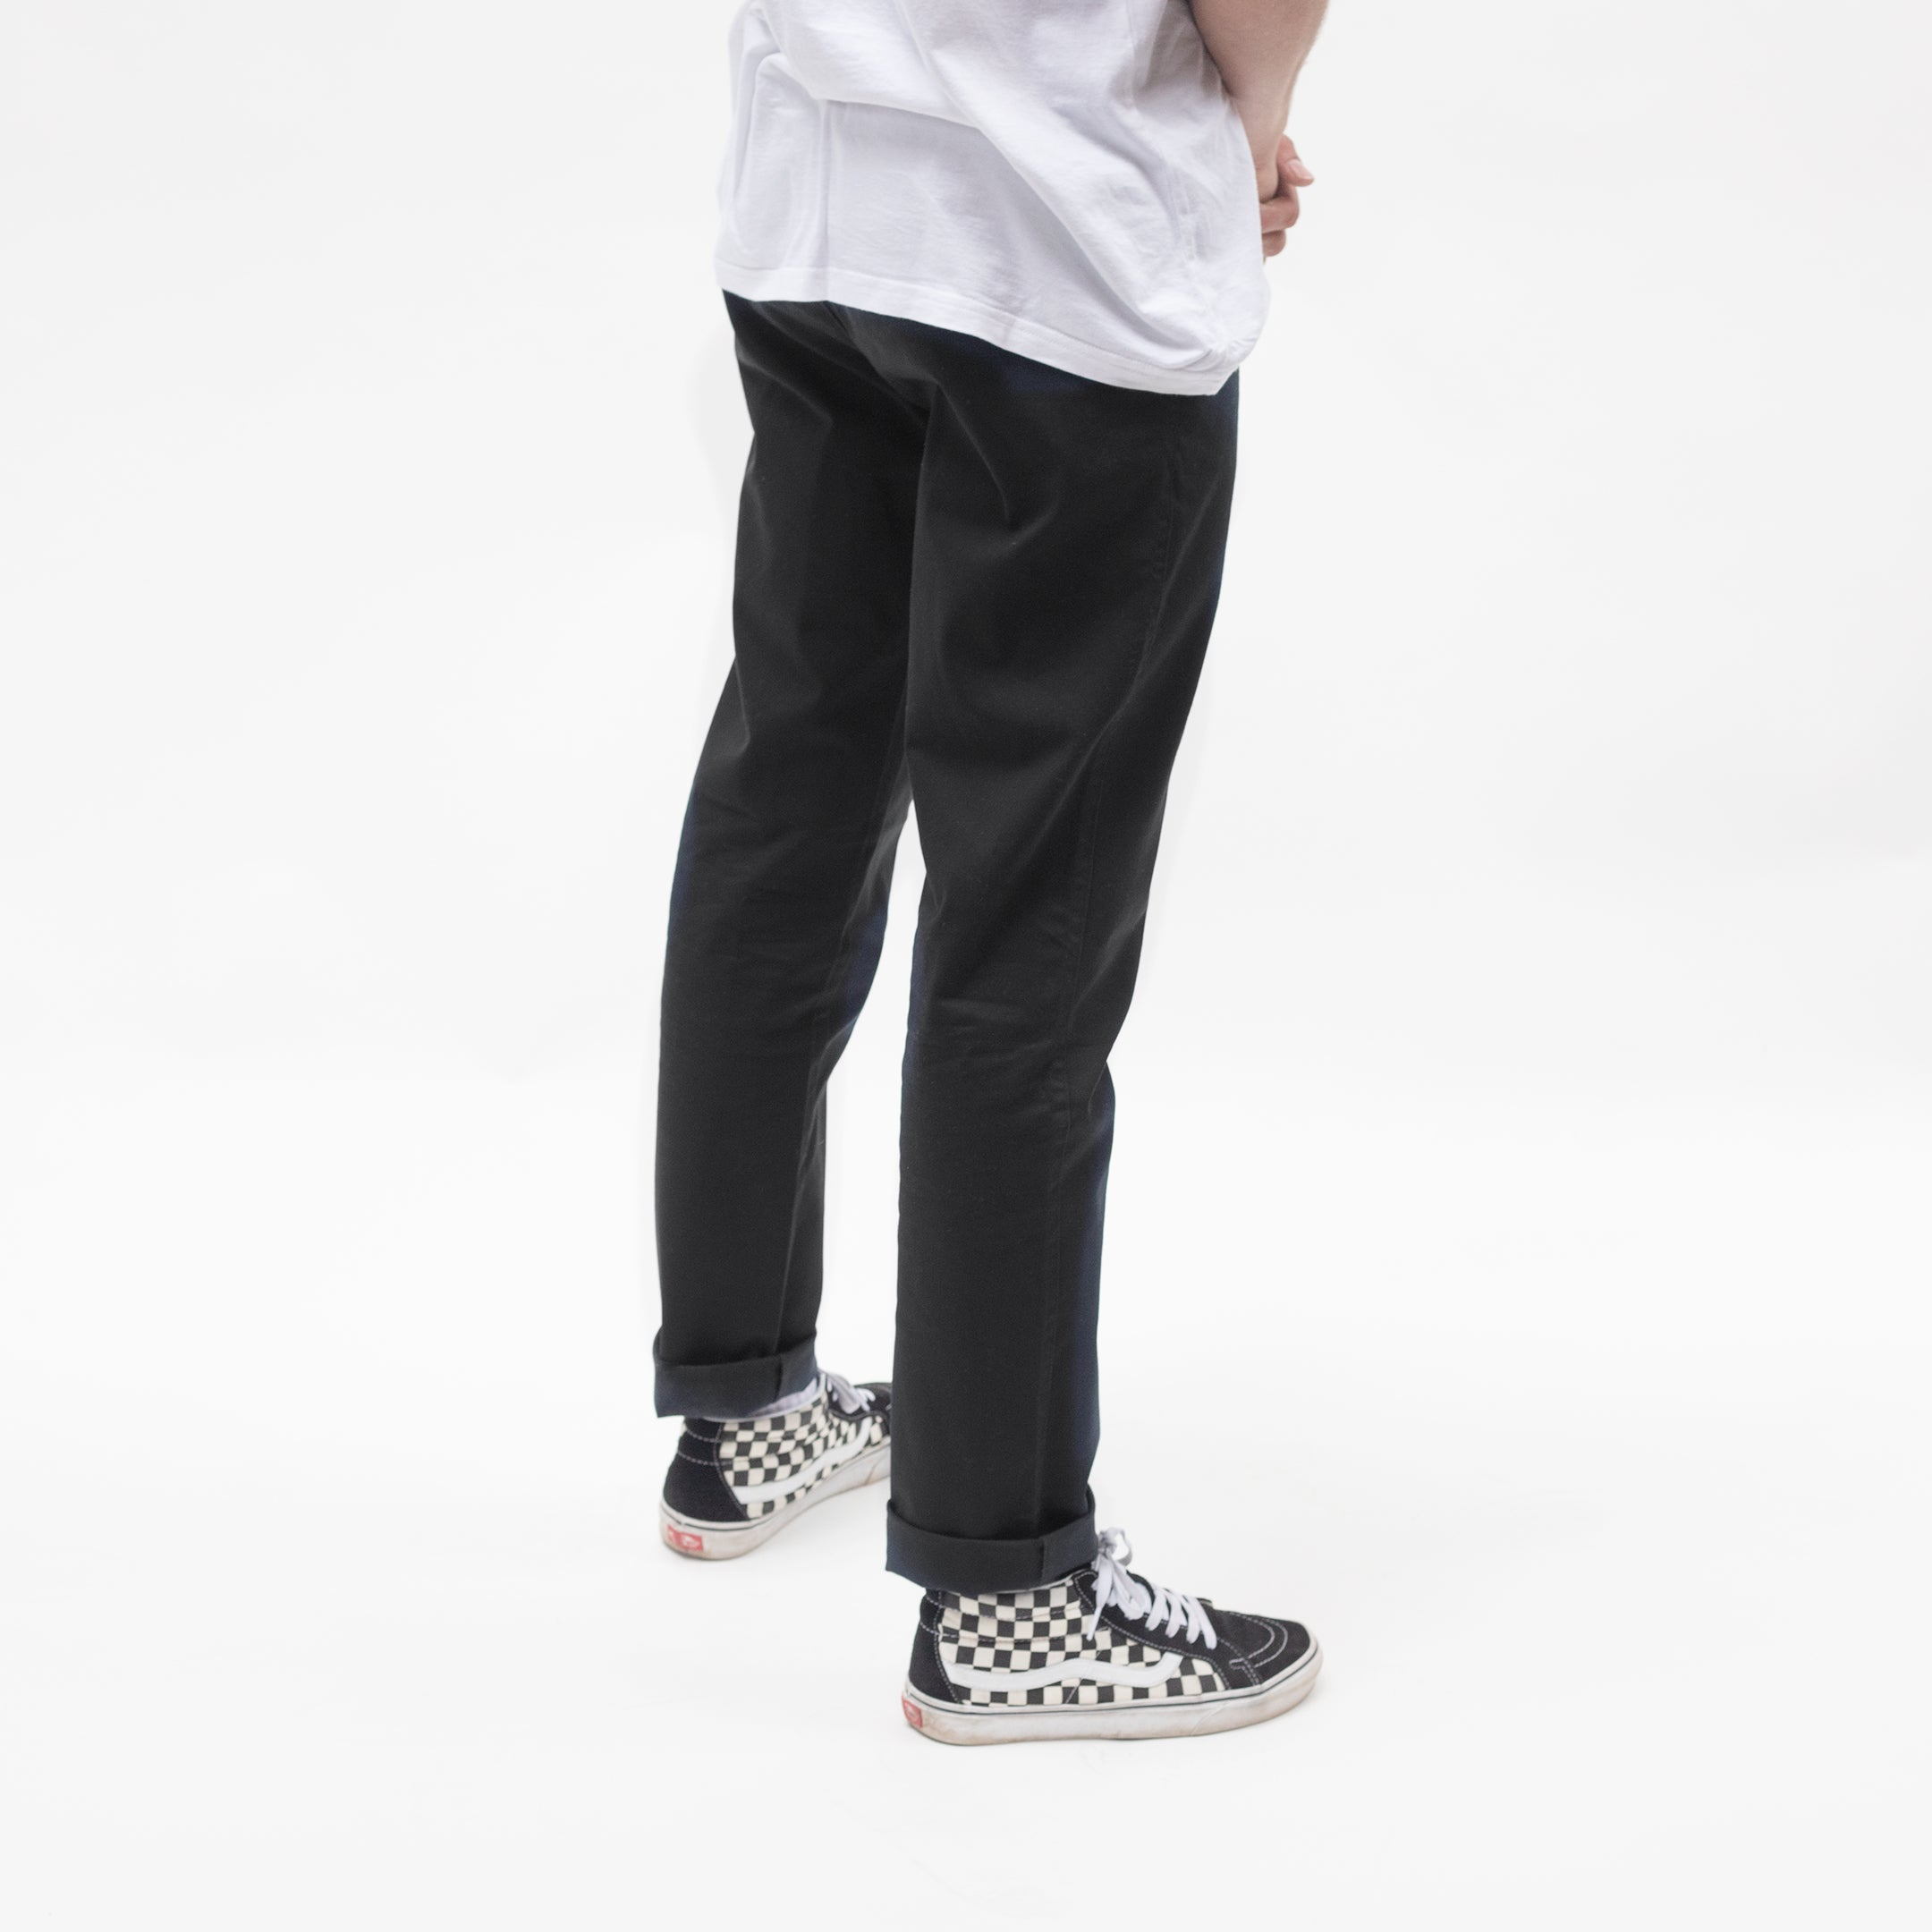 Parlez Bowse Trousers - Black